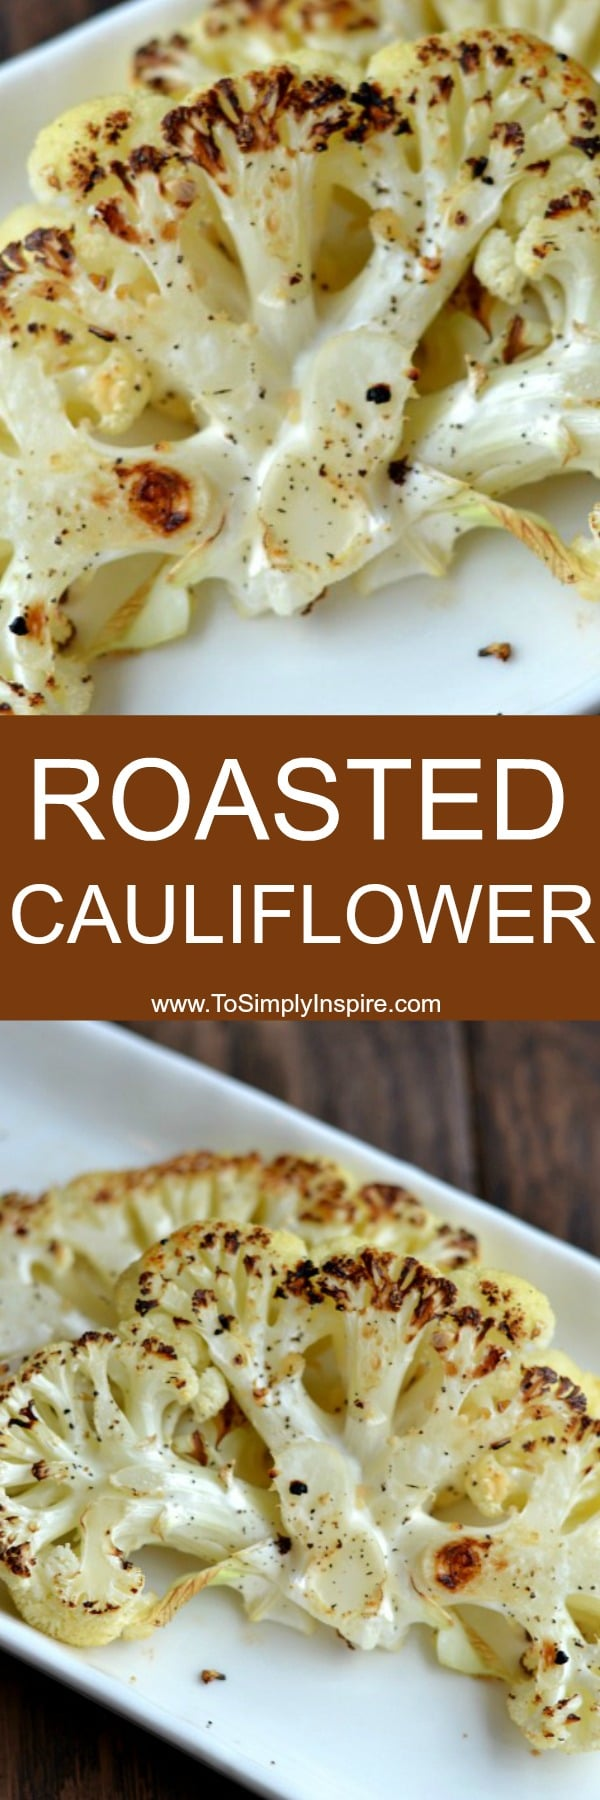 Roasted Cauliflower Steaks are an easy way to turn a simple vegetable into an elegant, low carb side dish.